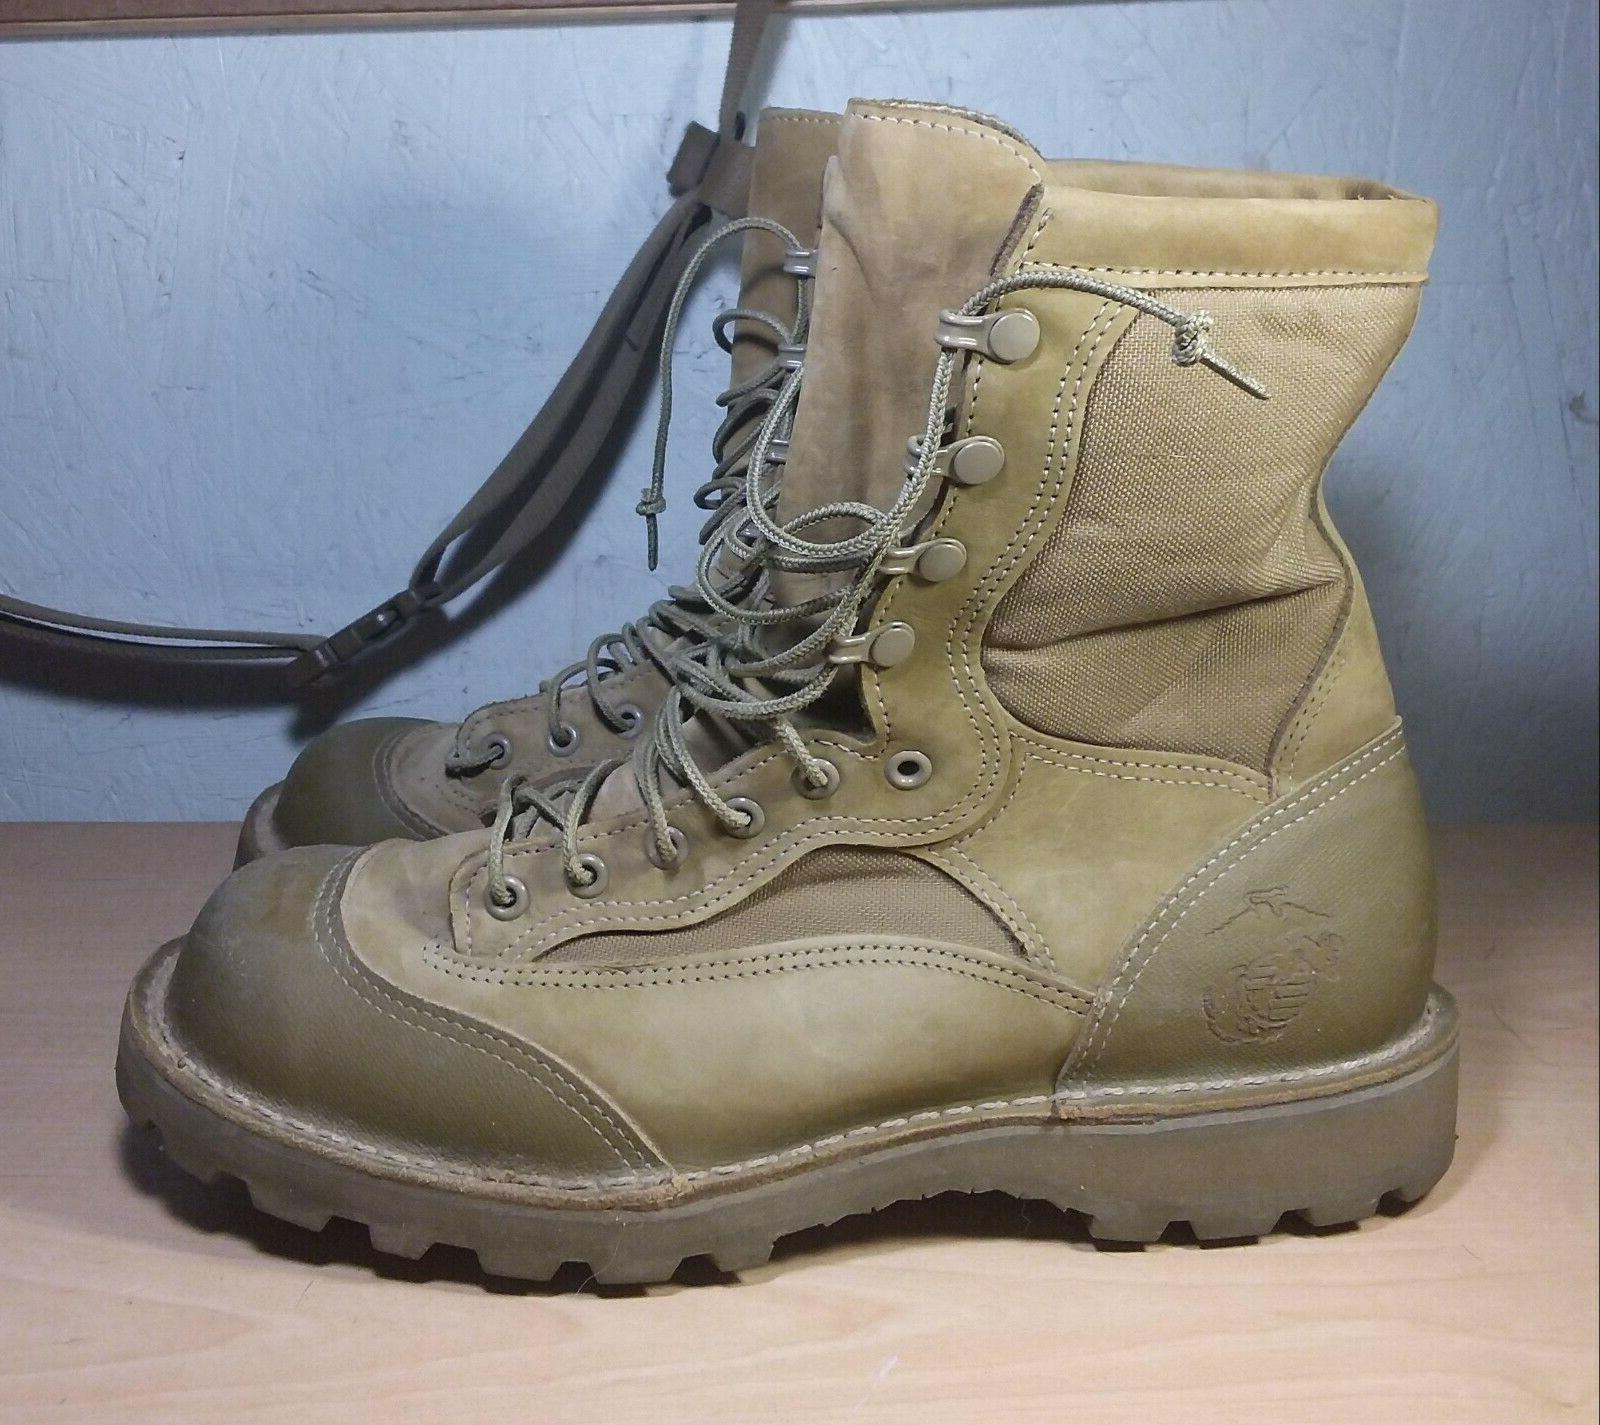 Men's Danner Combat Boots Size Hot Weather Marine Corps